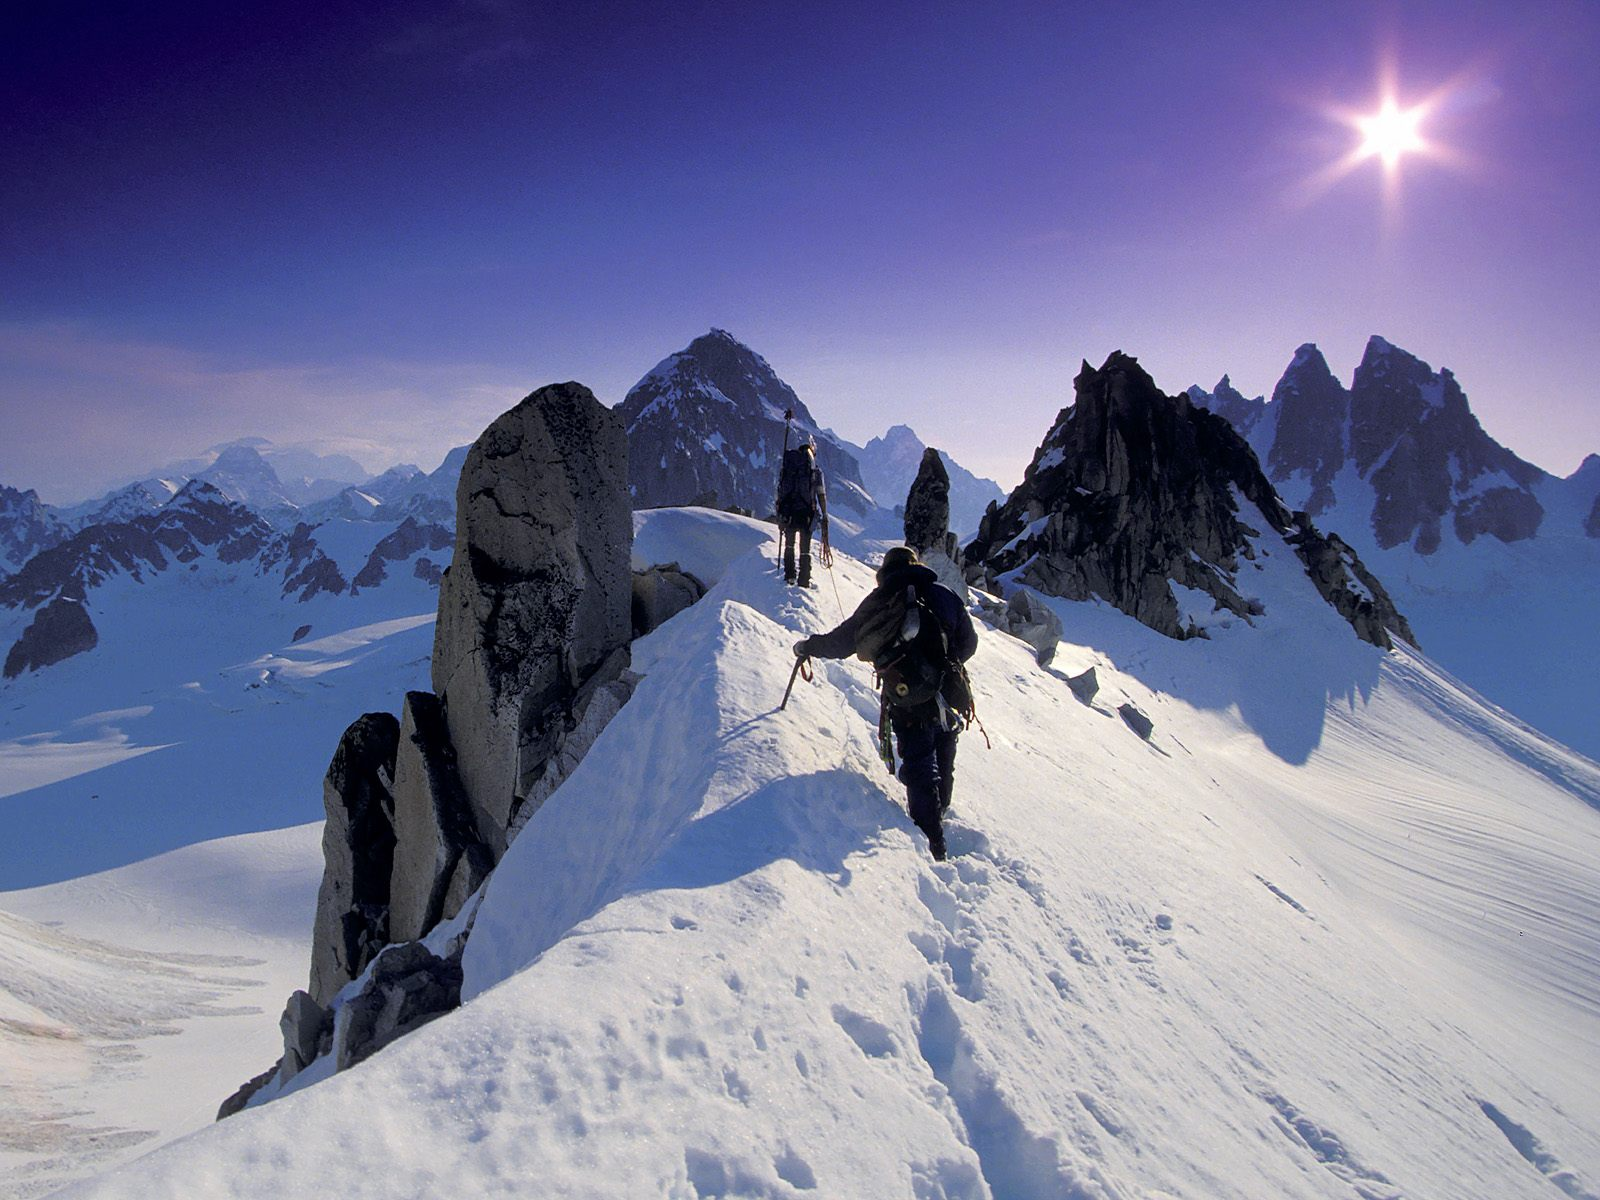 1600x1200 - Mountaineering Wallpapers 22